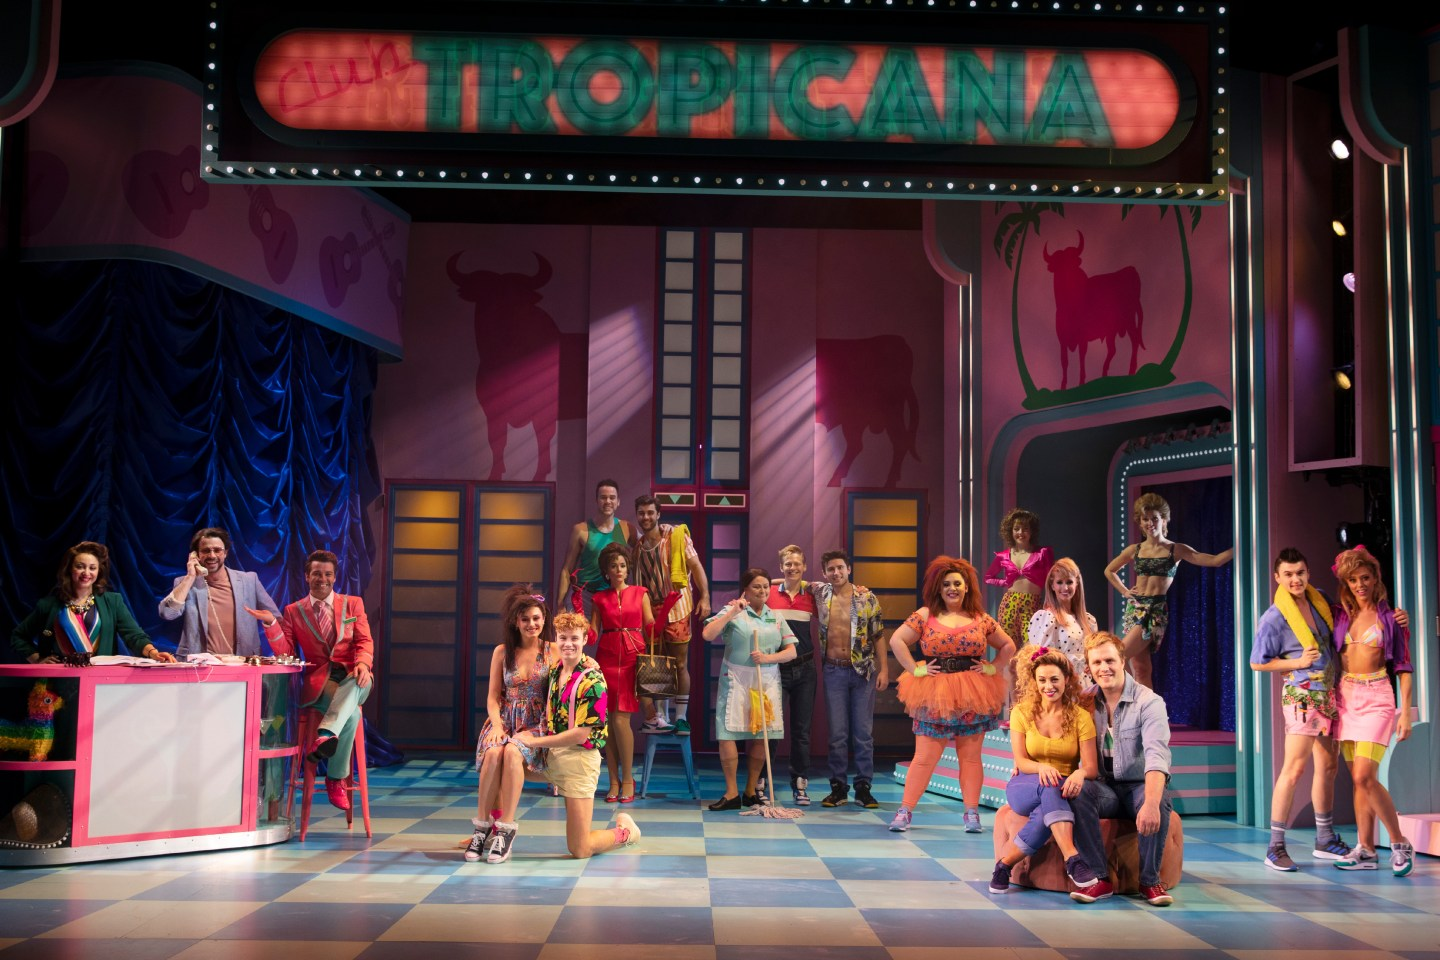 Club Tropicana Musical review